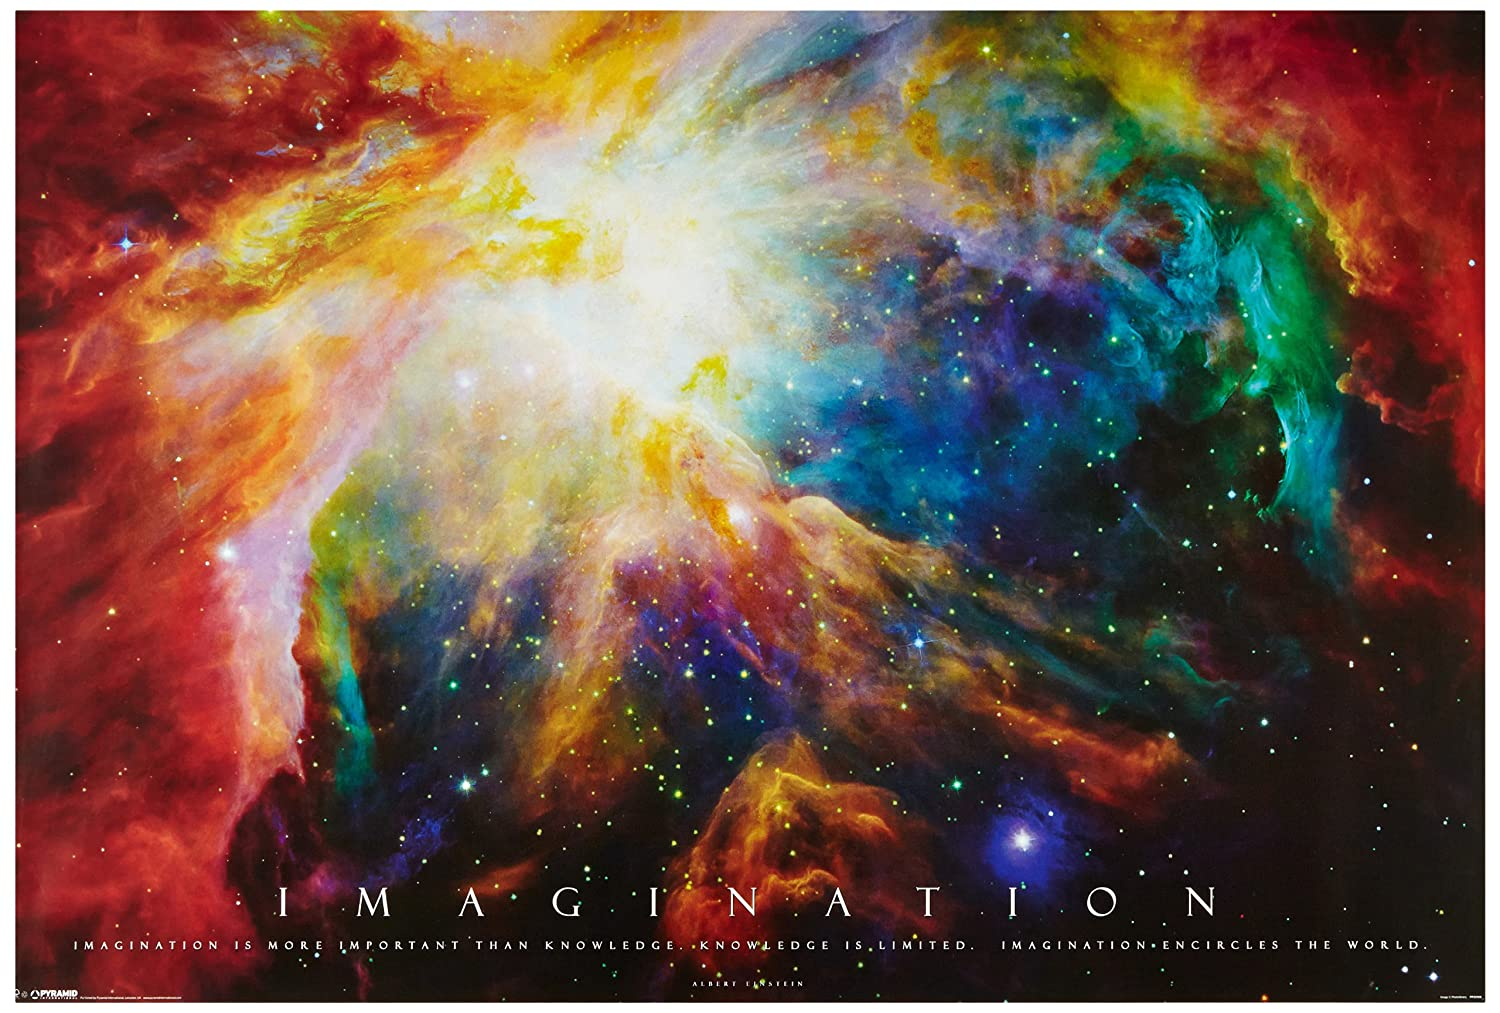 imagination foundation nebula - photo #15